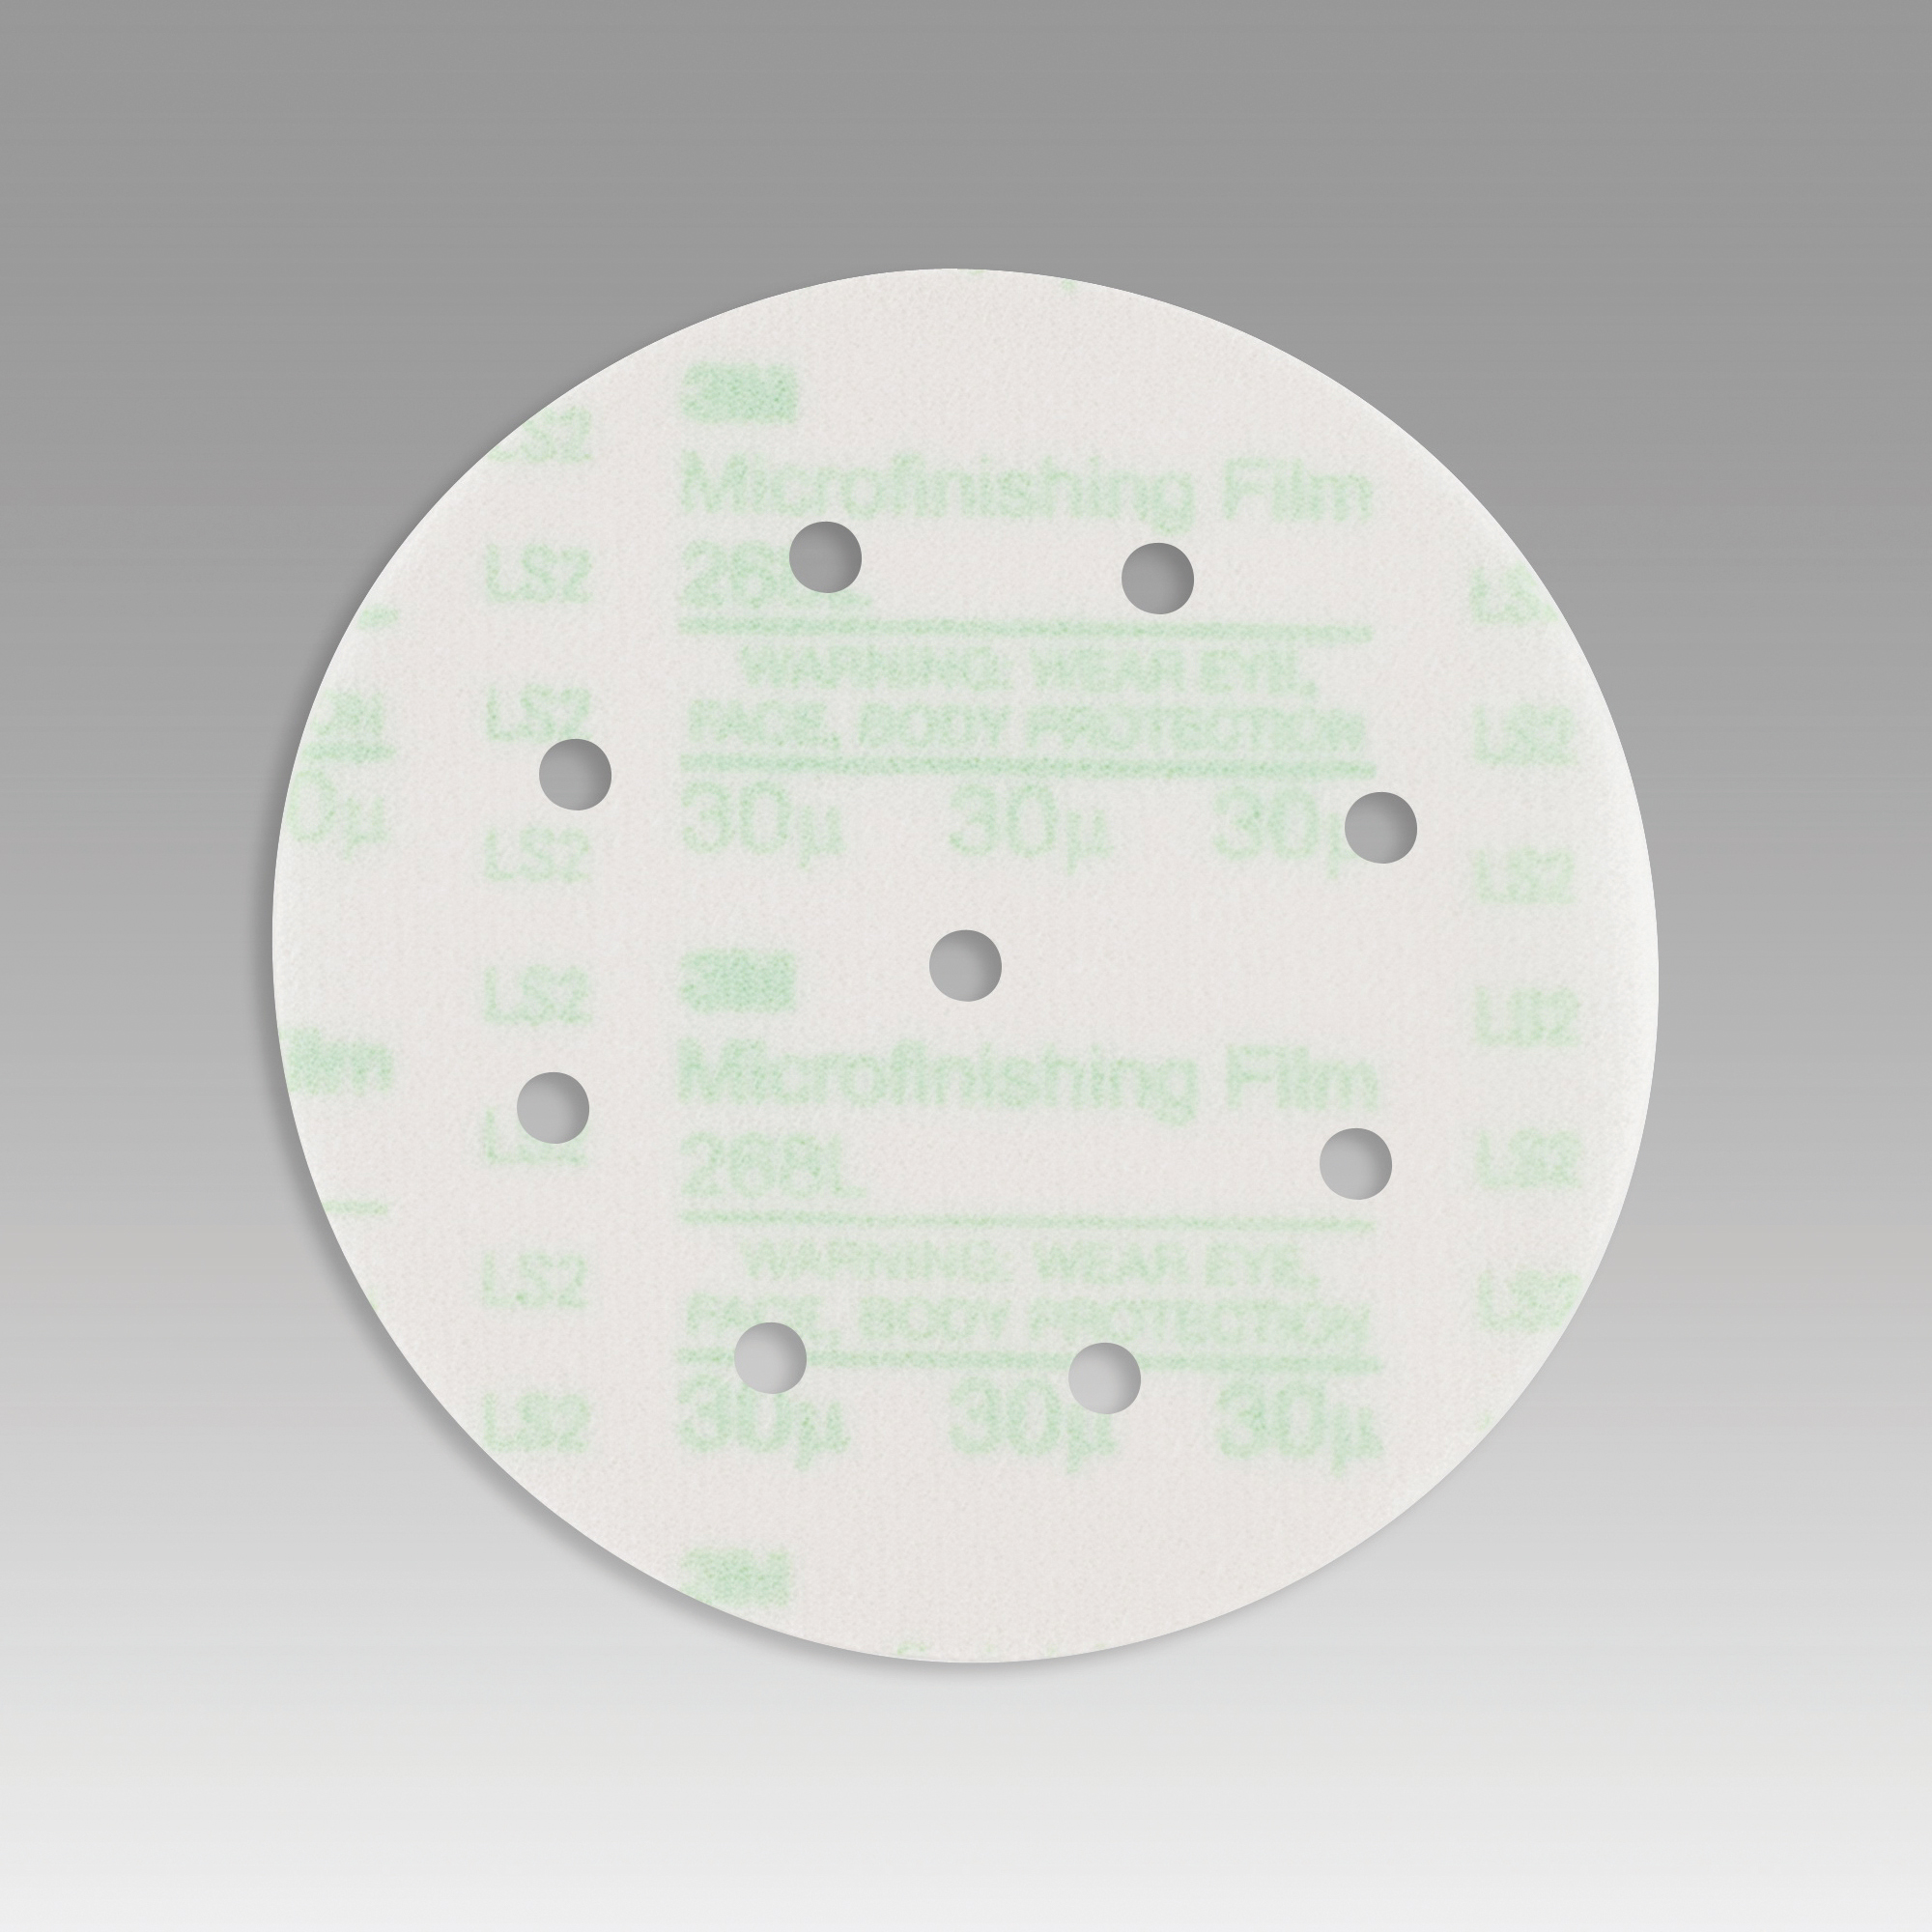 3M™ Hookit™ 051111-54567 268L Type D Microfinishing Orbital Sanding Disc, 6 in Dia Disc, 30 micron Grit, Extra Fine Grade, Aluminum Oxide Abrasive, Polyester Film Backing